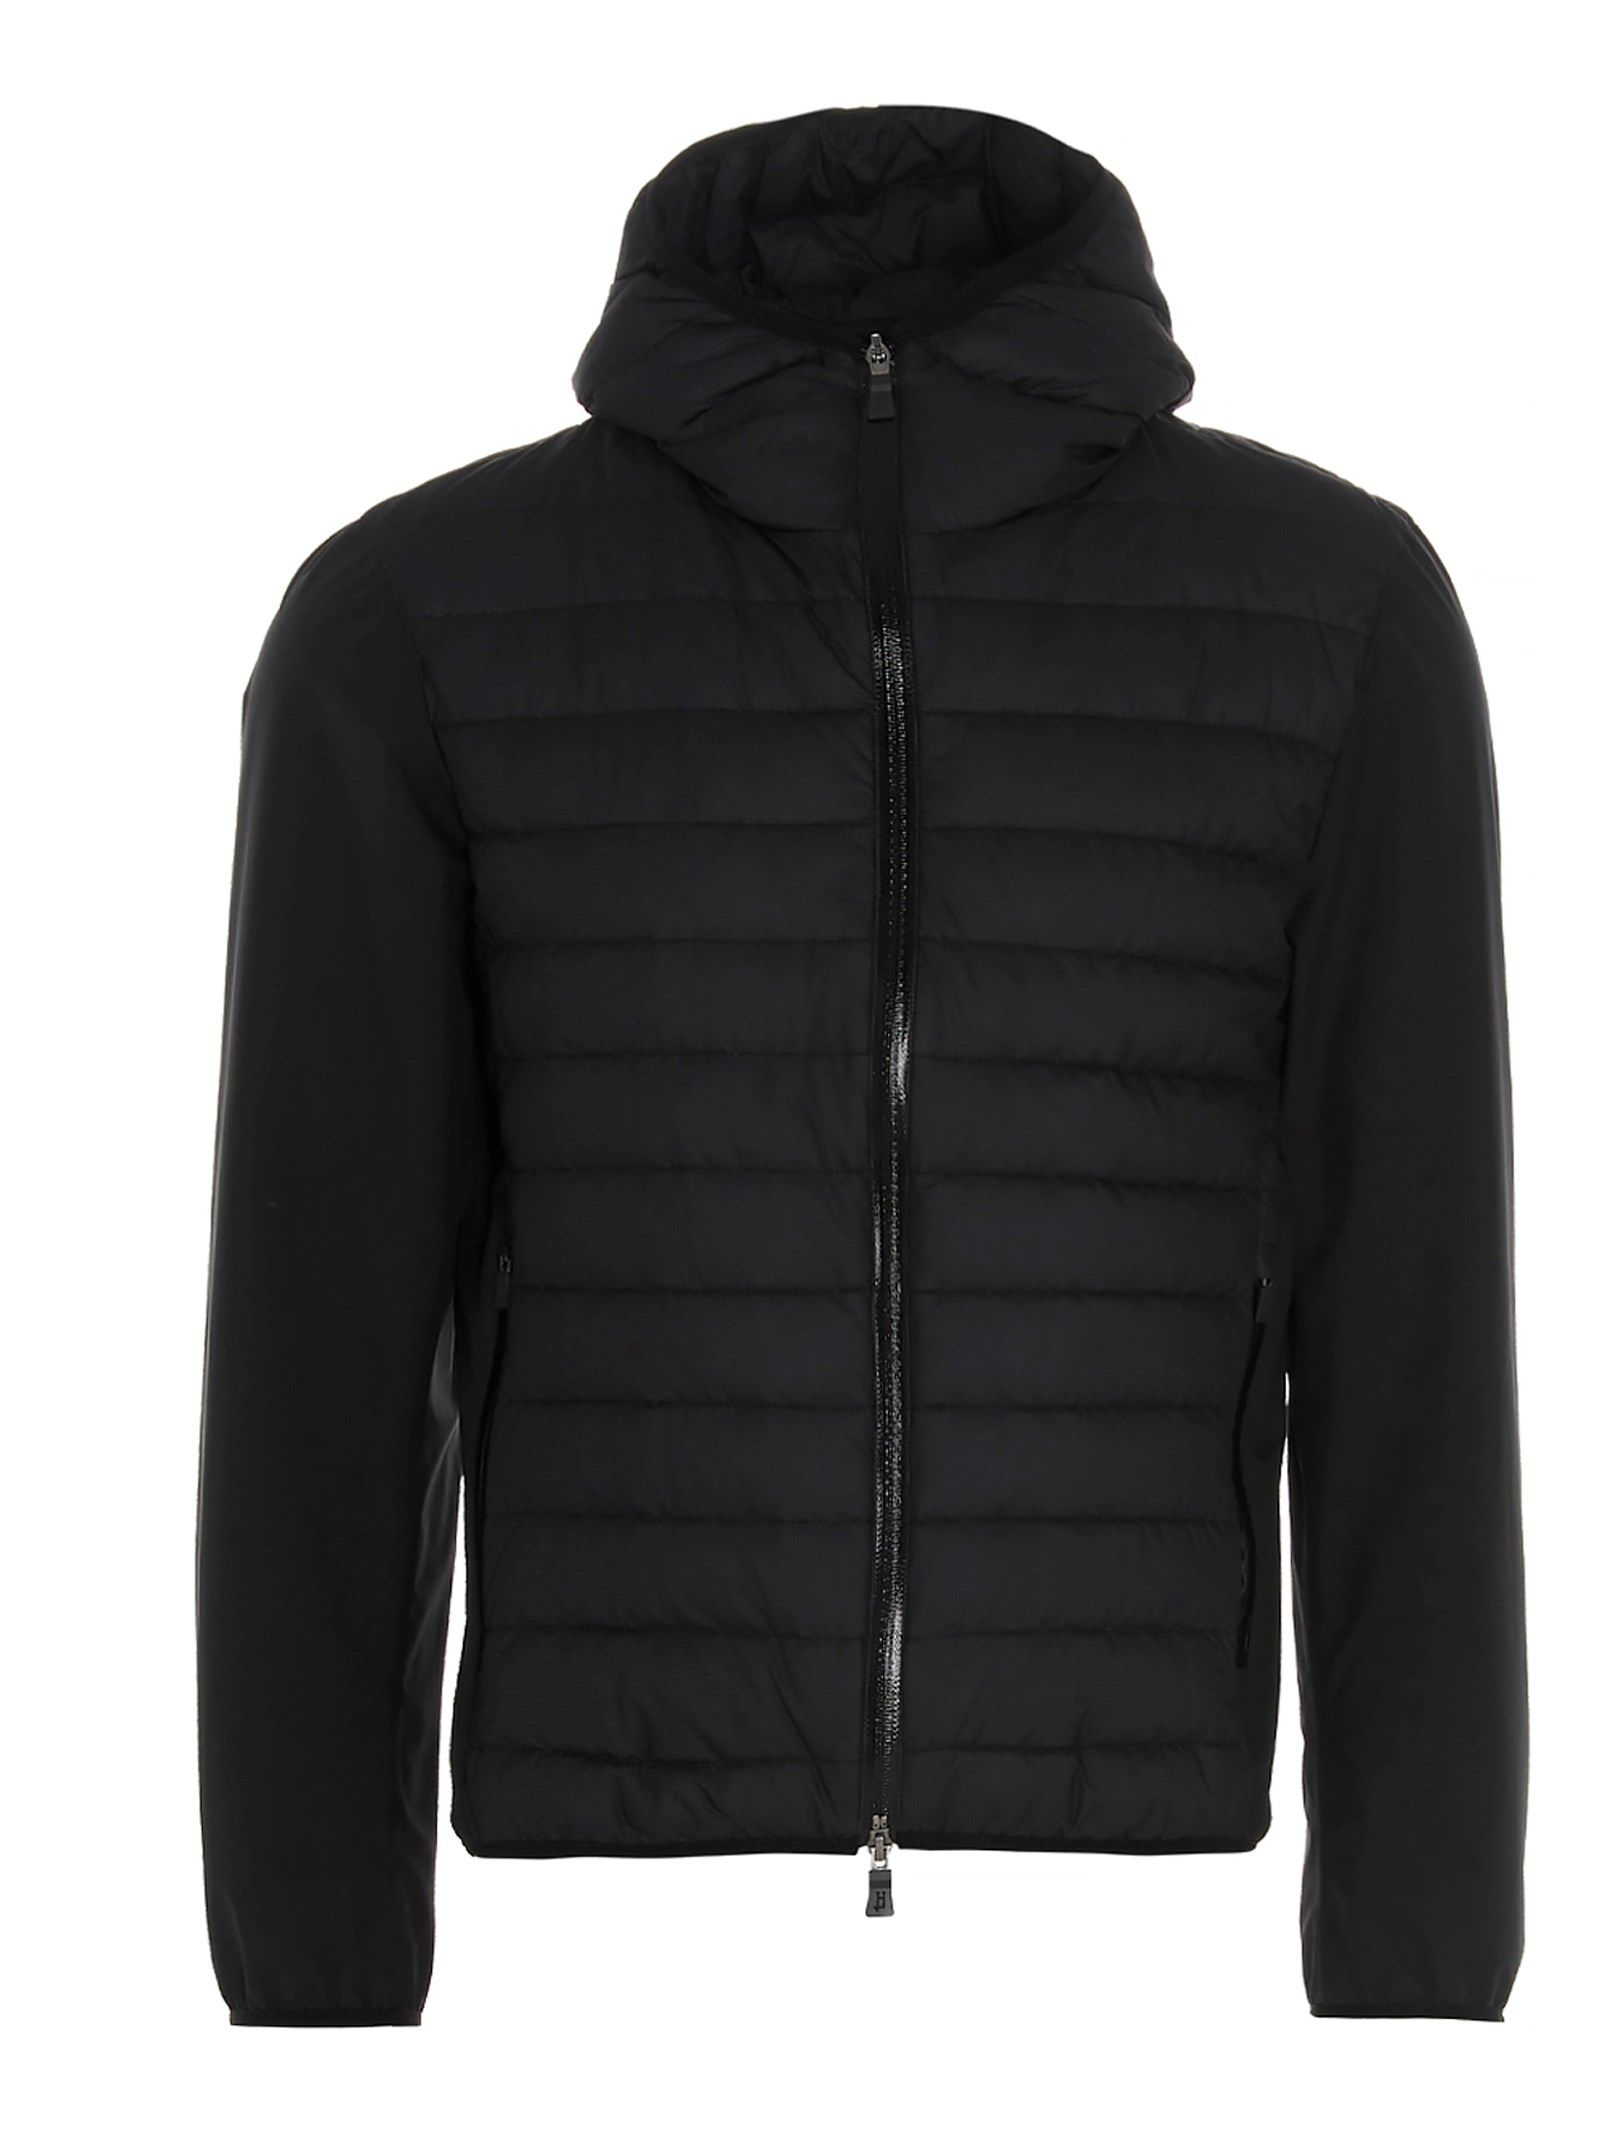 Herno HERNO MEN'S PI180UL123949300 BLACK OTHER MATERIALS OUTERWEAR JACKET